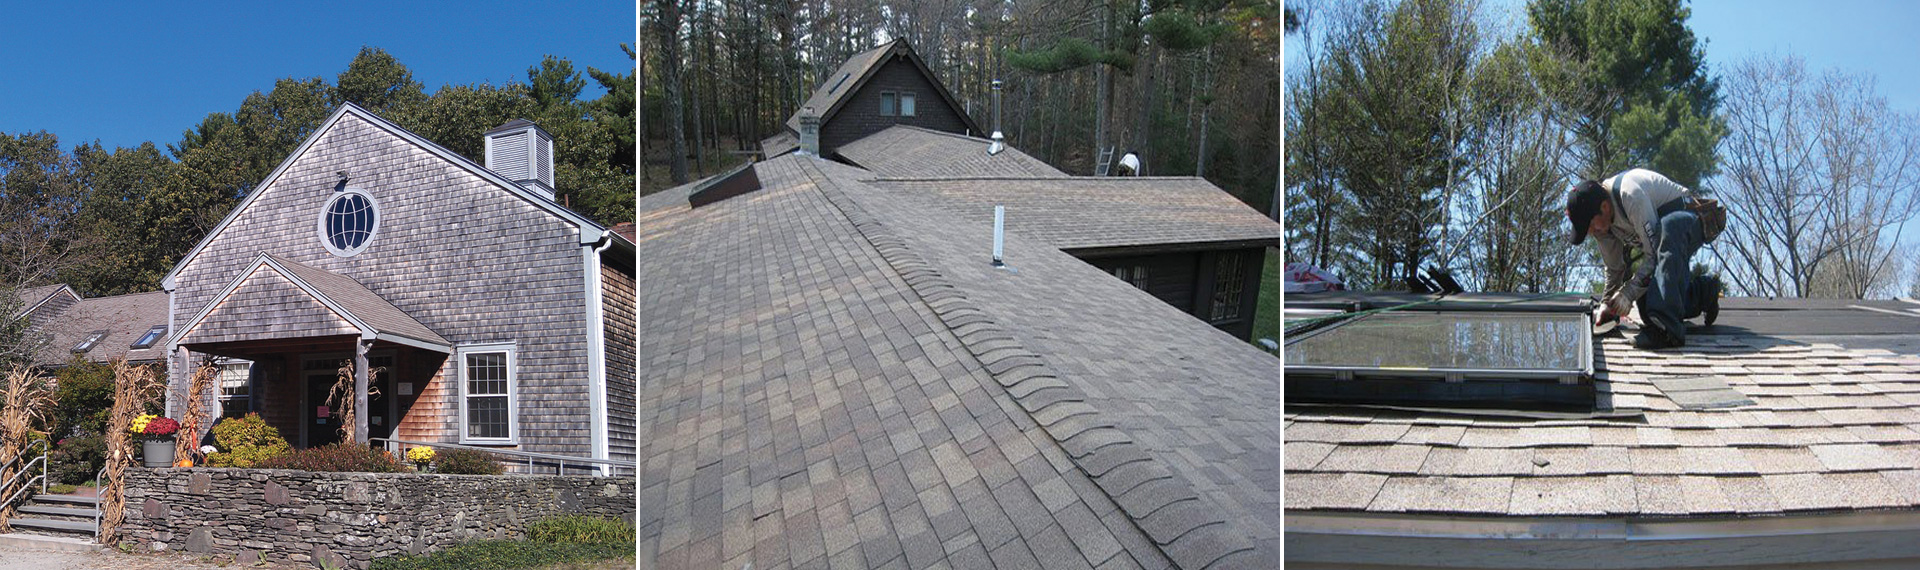 MasterCraft Roofing Norwell MA